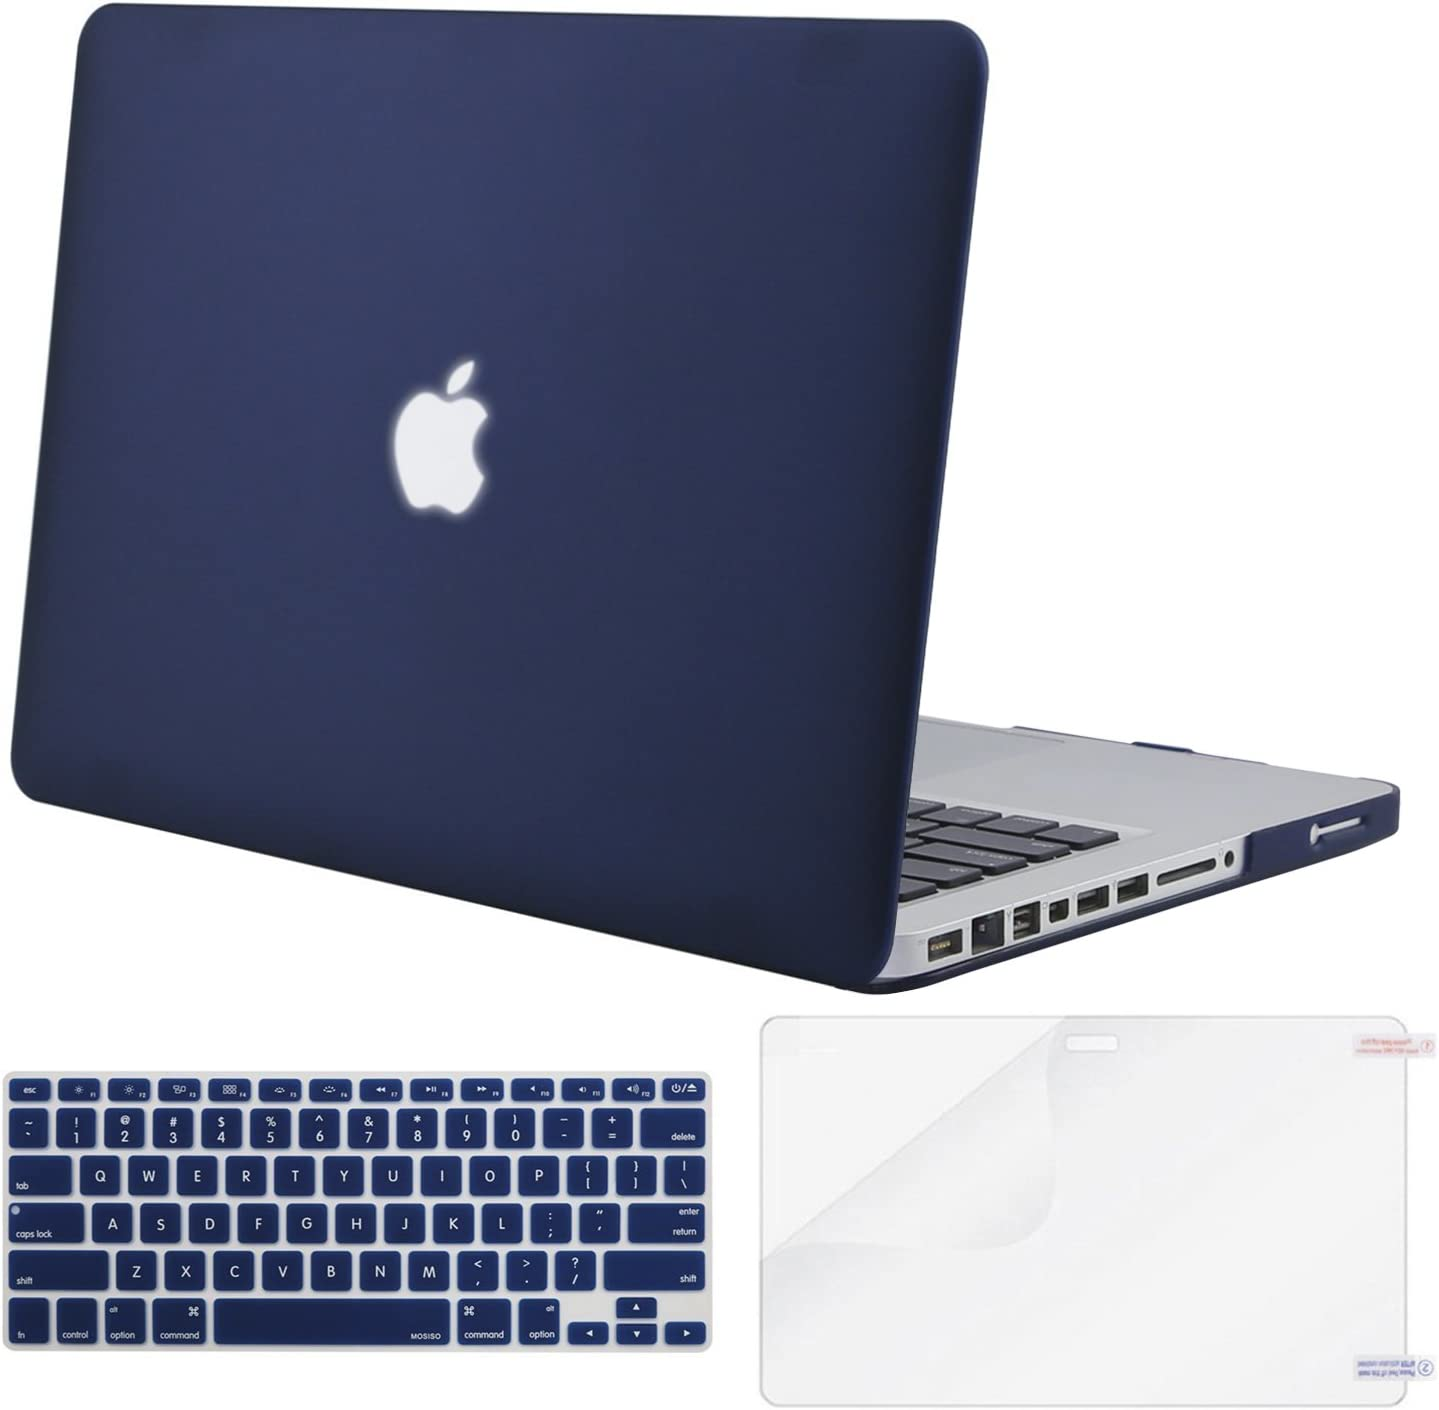 MOSISO Plastic Hard Shell Case & Keyboard Cover & Screen Protector Only Compatible with Old Version MacBook Pro 13 inch (A1278, with CD-ROM), Release Early 2012/2011/2010/2009/2008, Navy Blue